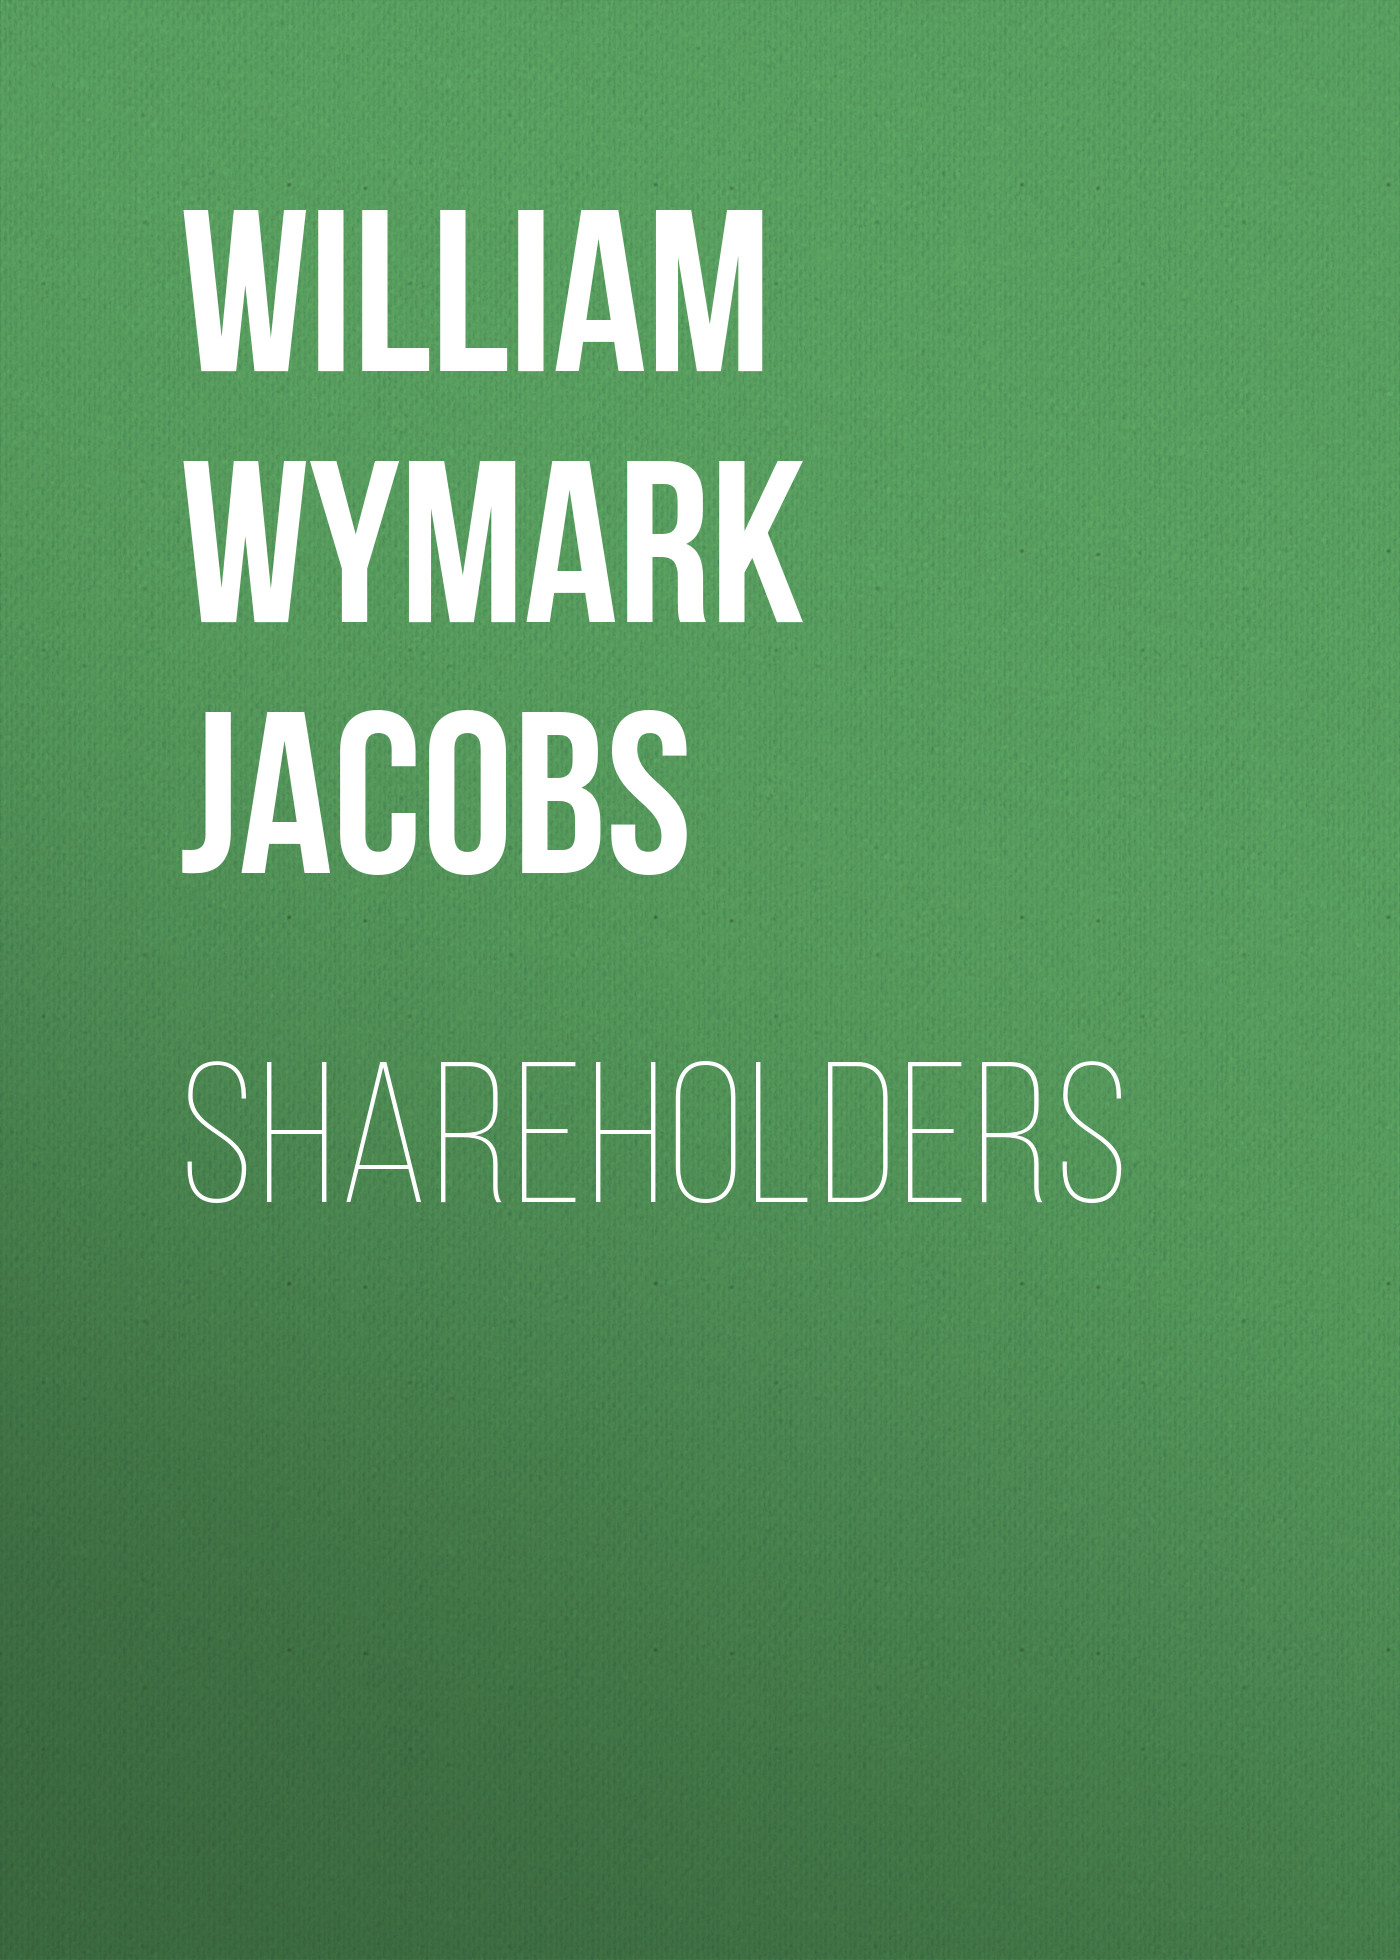 лучшая цена William Wymark Jacobs Shareholders